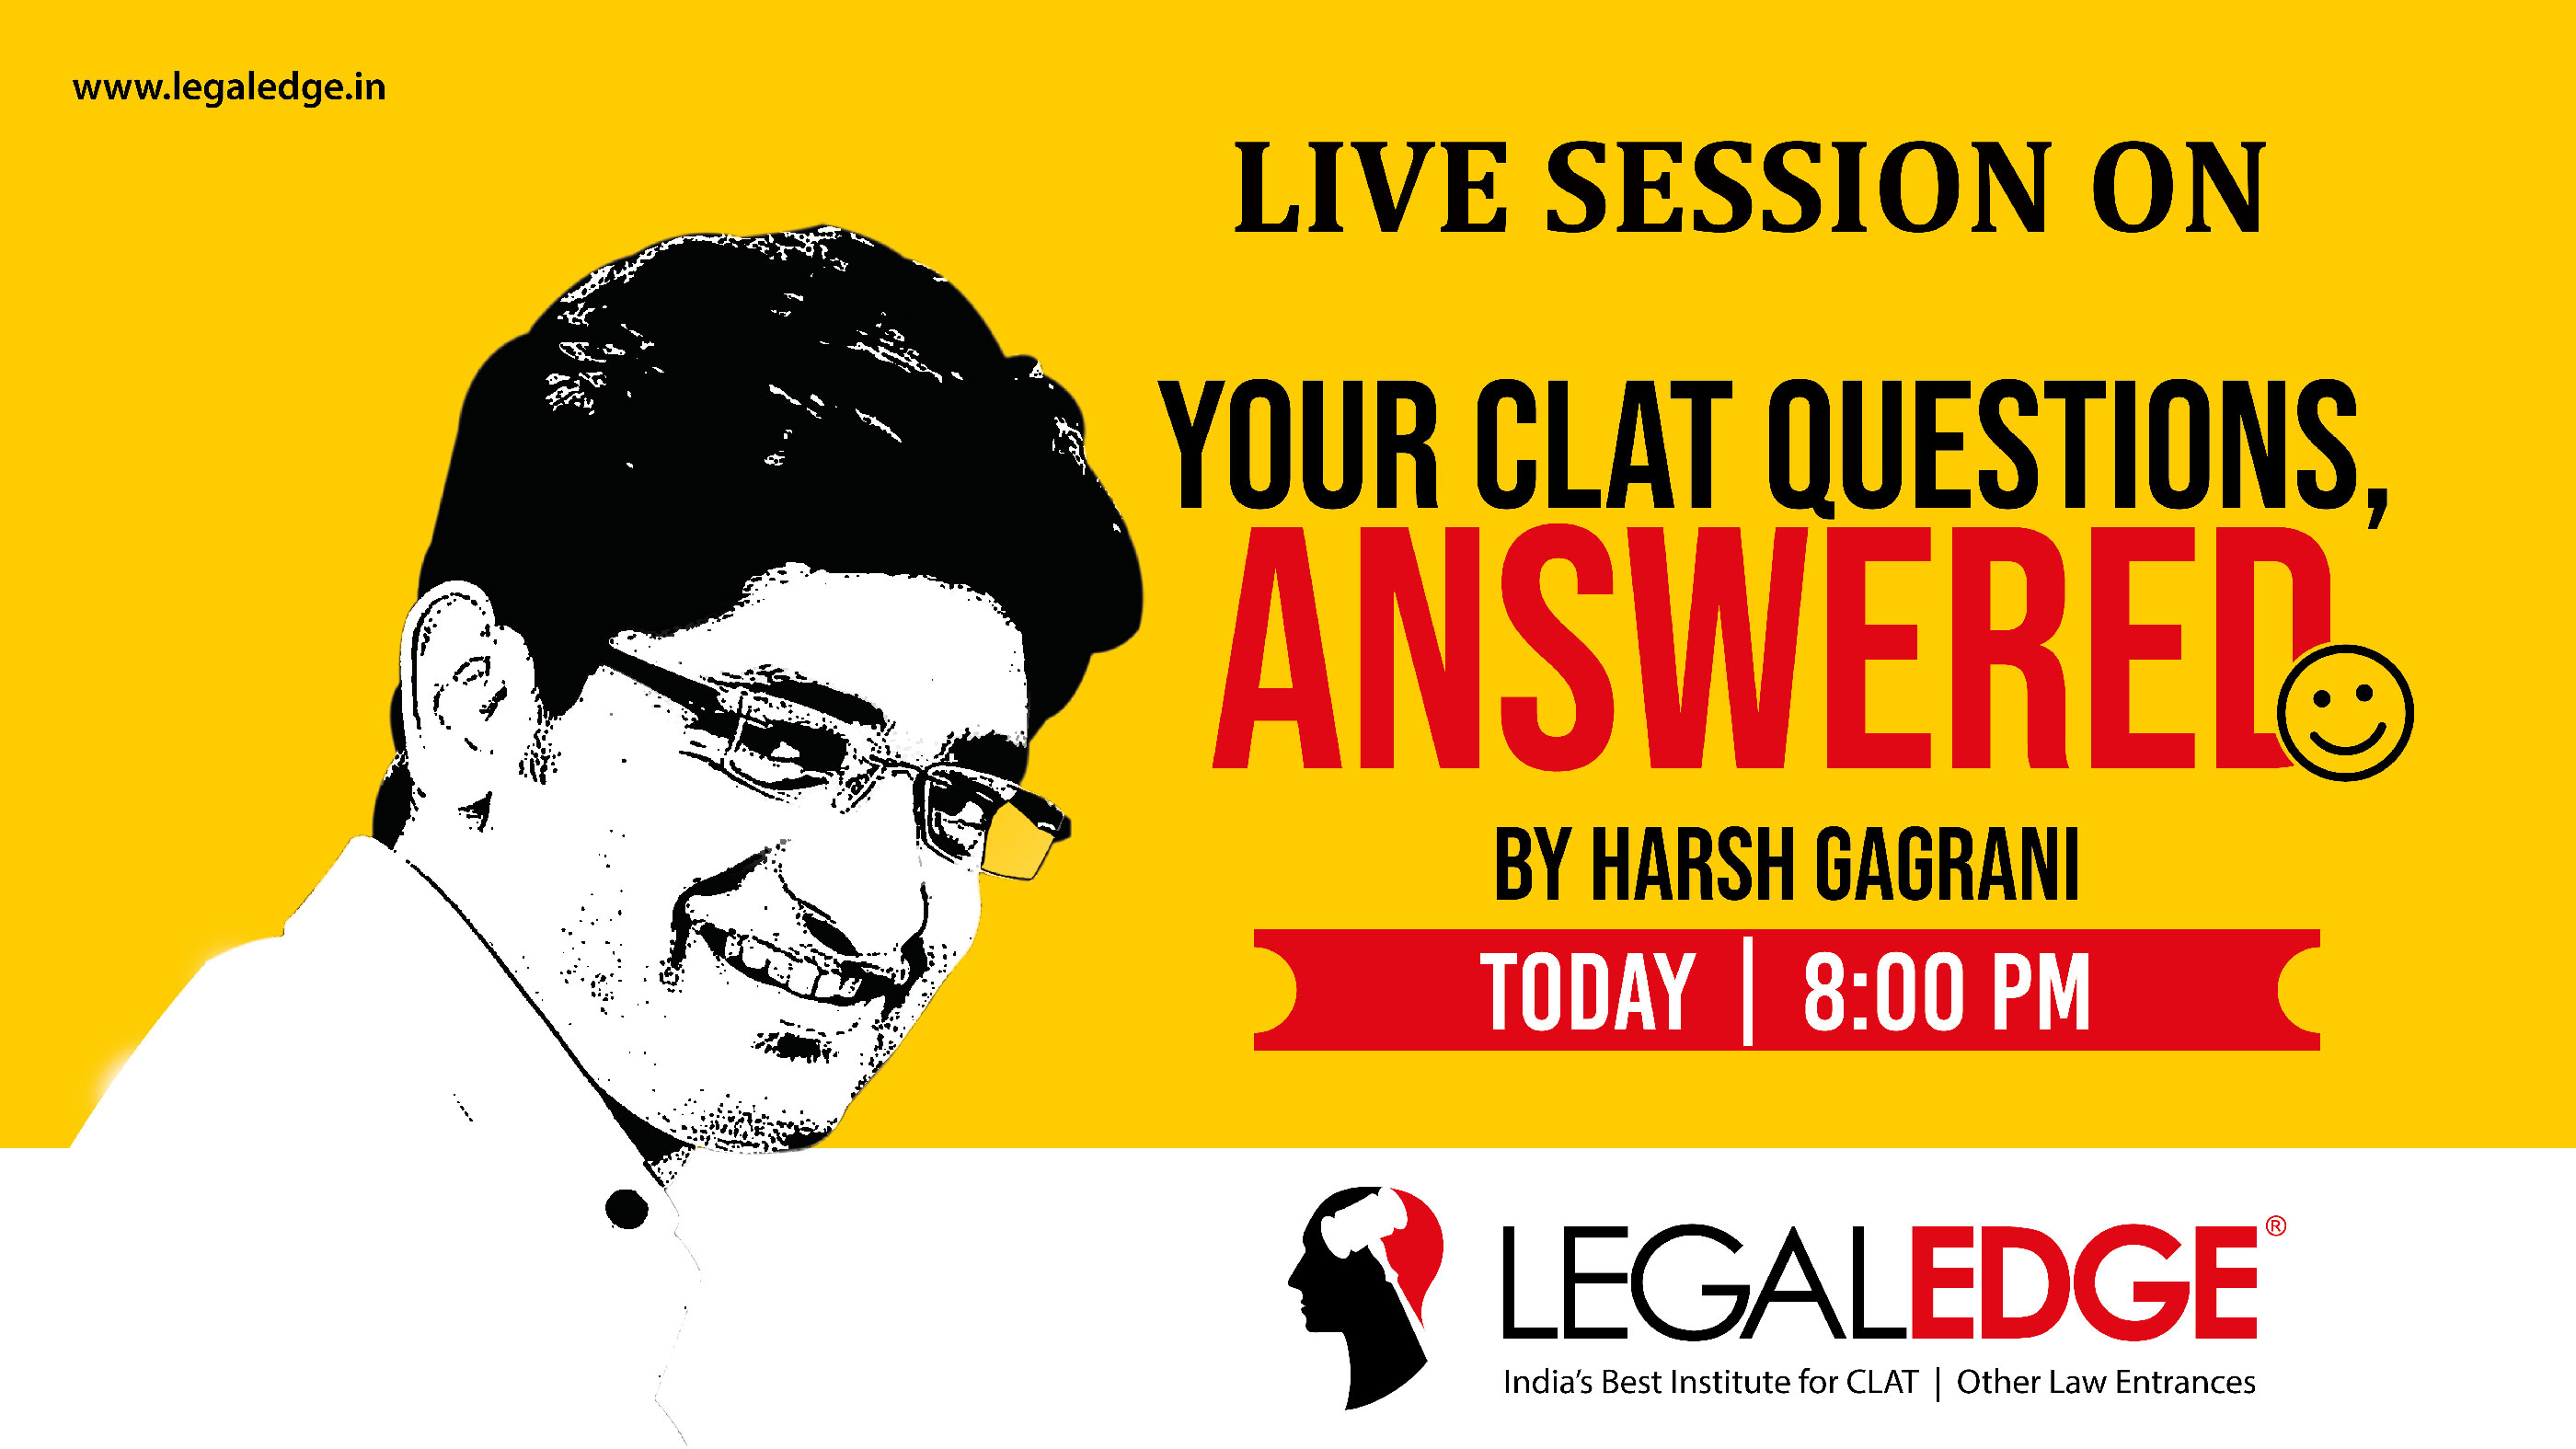 YOUR CLAT QUESTIONS ANSWERED BY HARSH GAGRANI